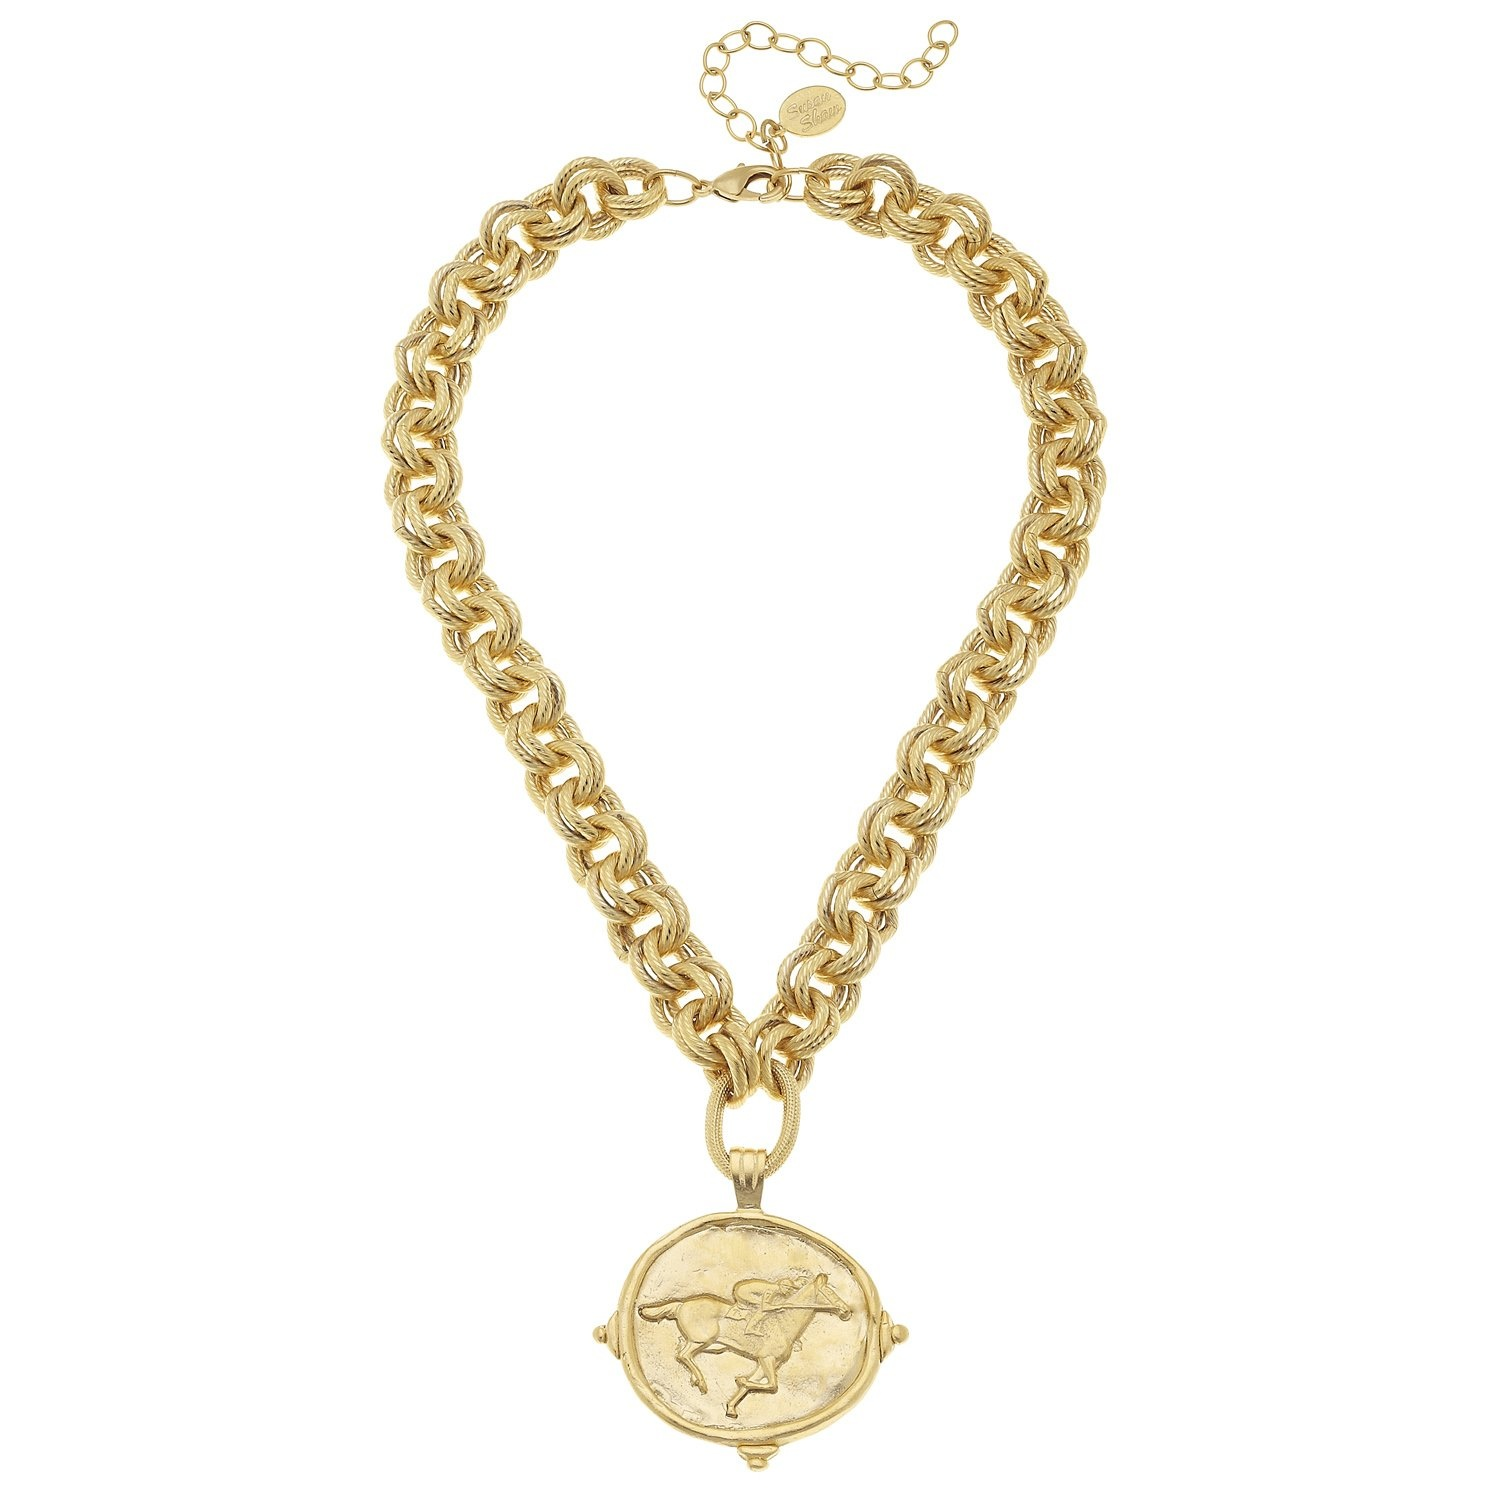 Single Equestrian Charm Necklace